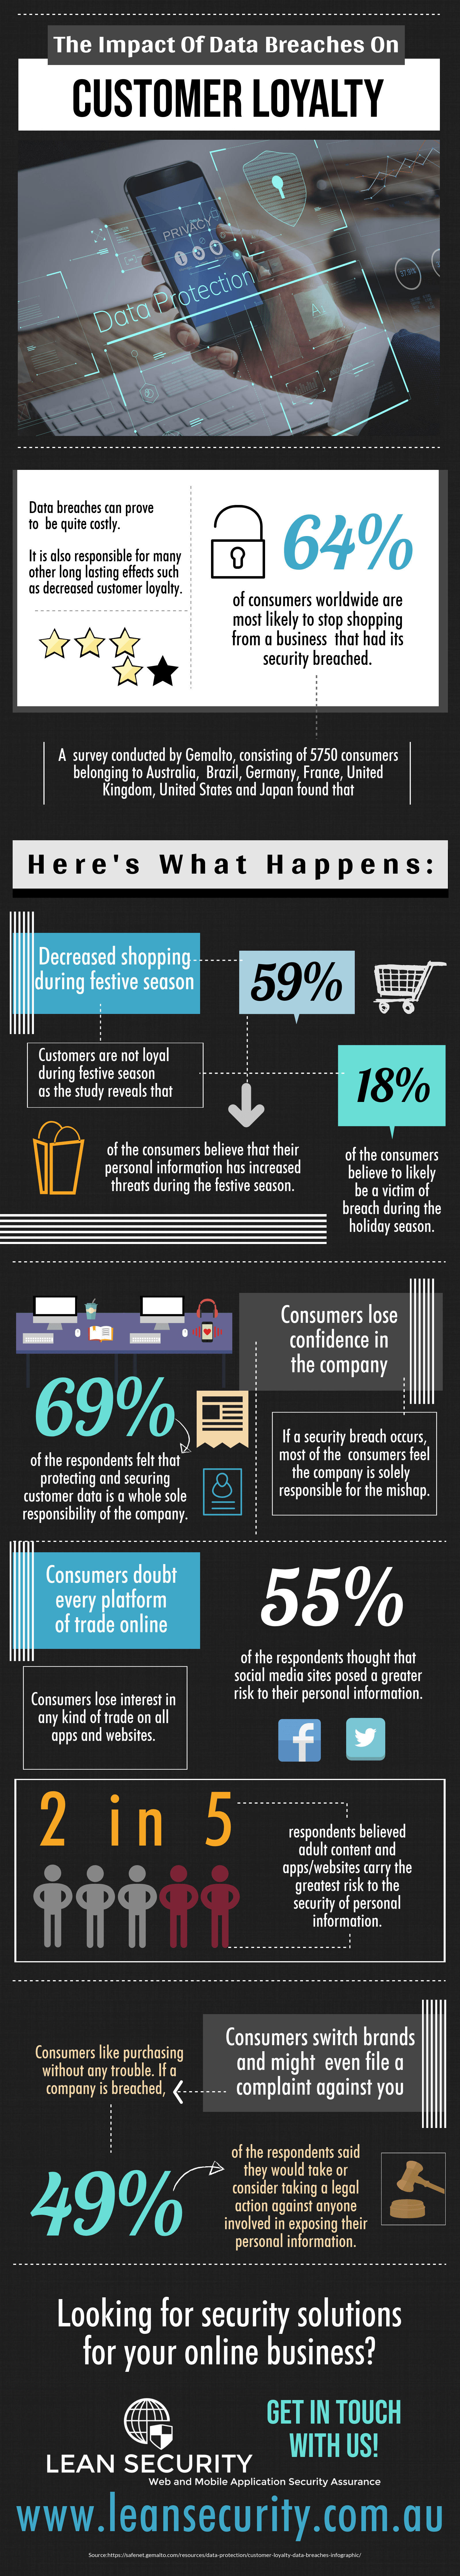 The Impact Data Breaches on Customer loyalty.png